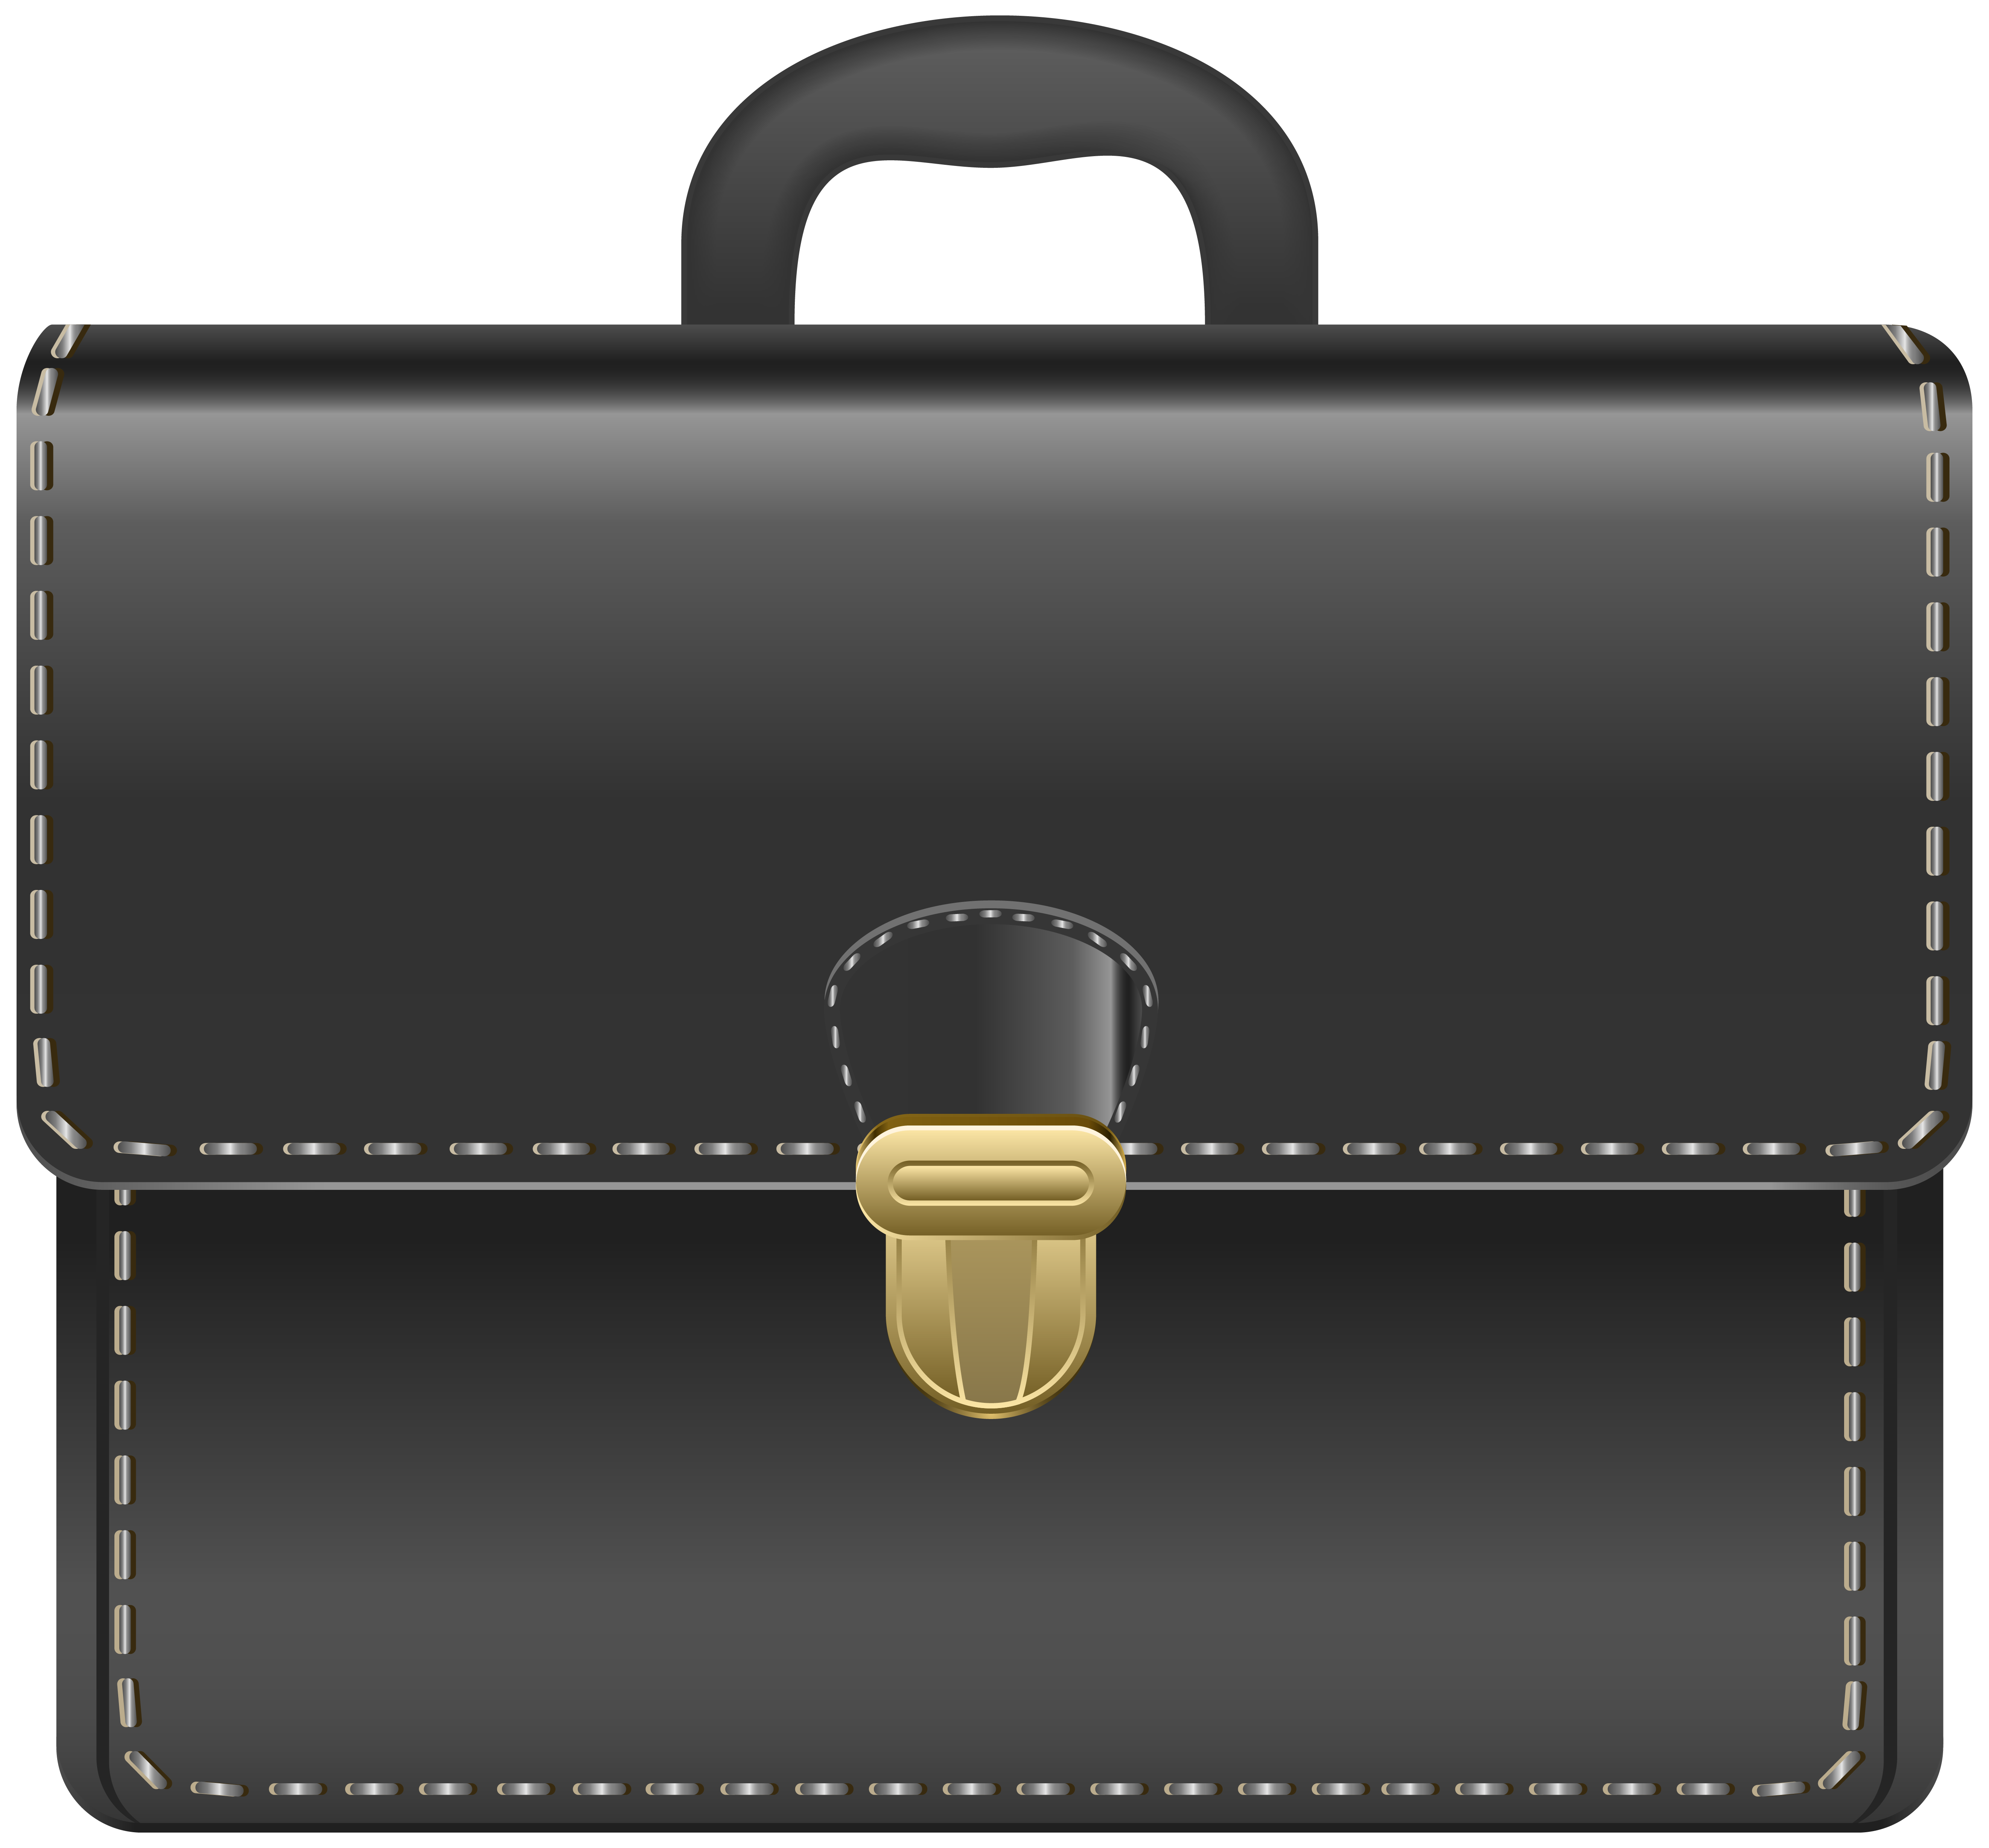 Luggage clipart business. Bag png clip art